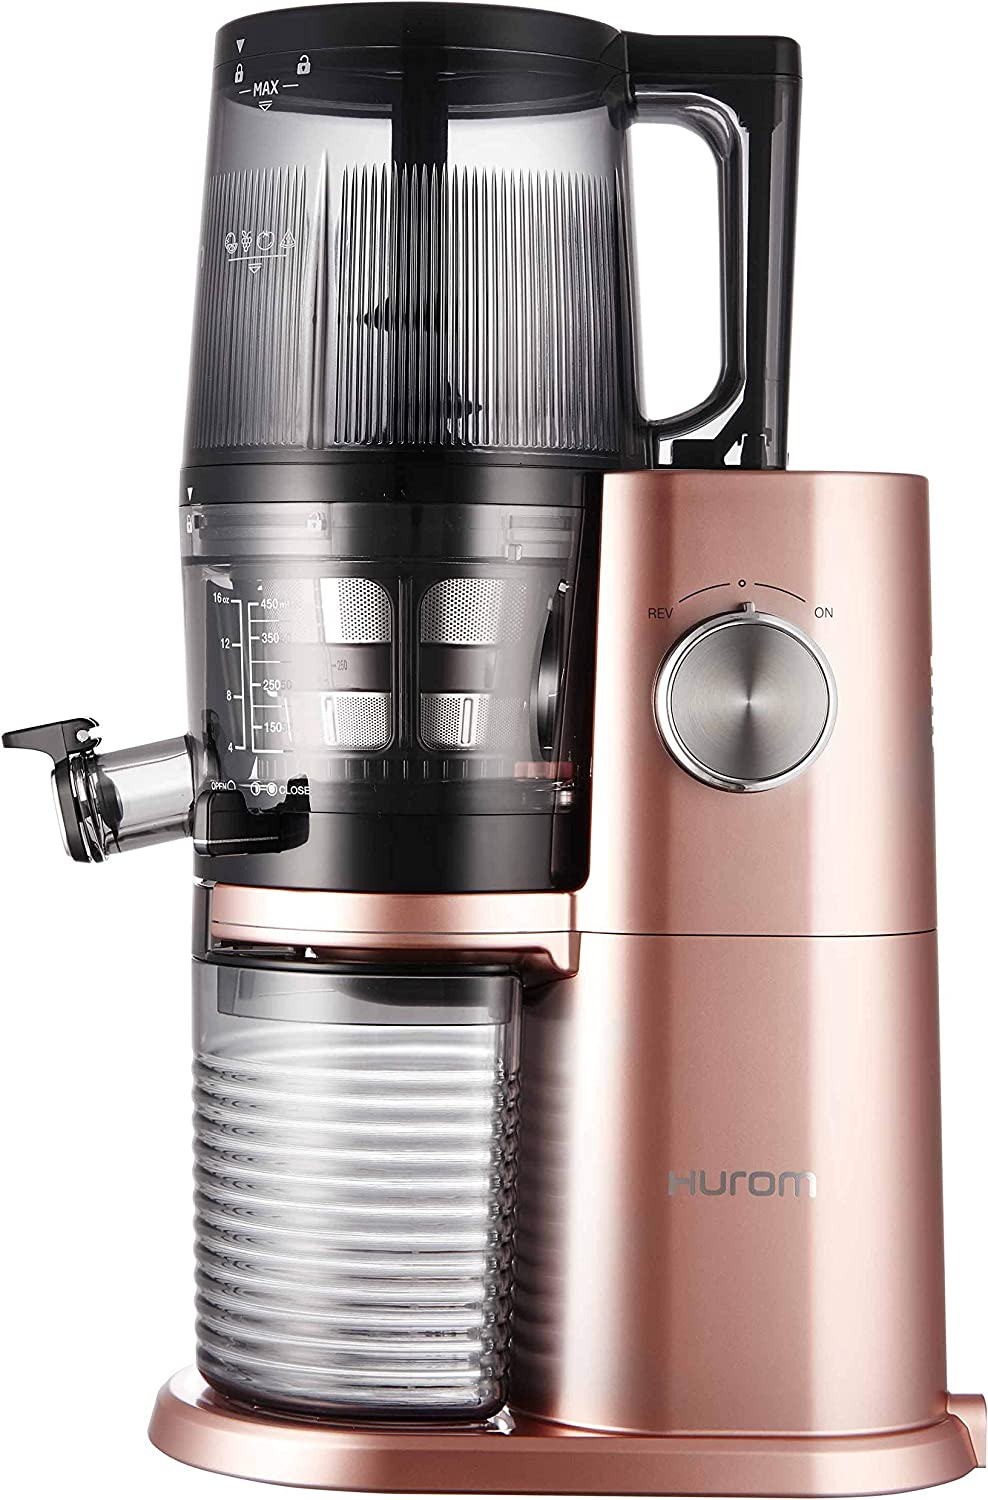 81Oe4RgoU L. AC SL1500 Best Hurom Juicer 2021 - Reviews & Buying Guide